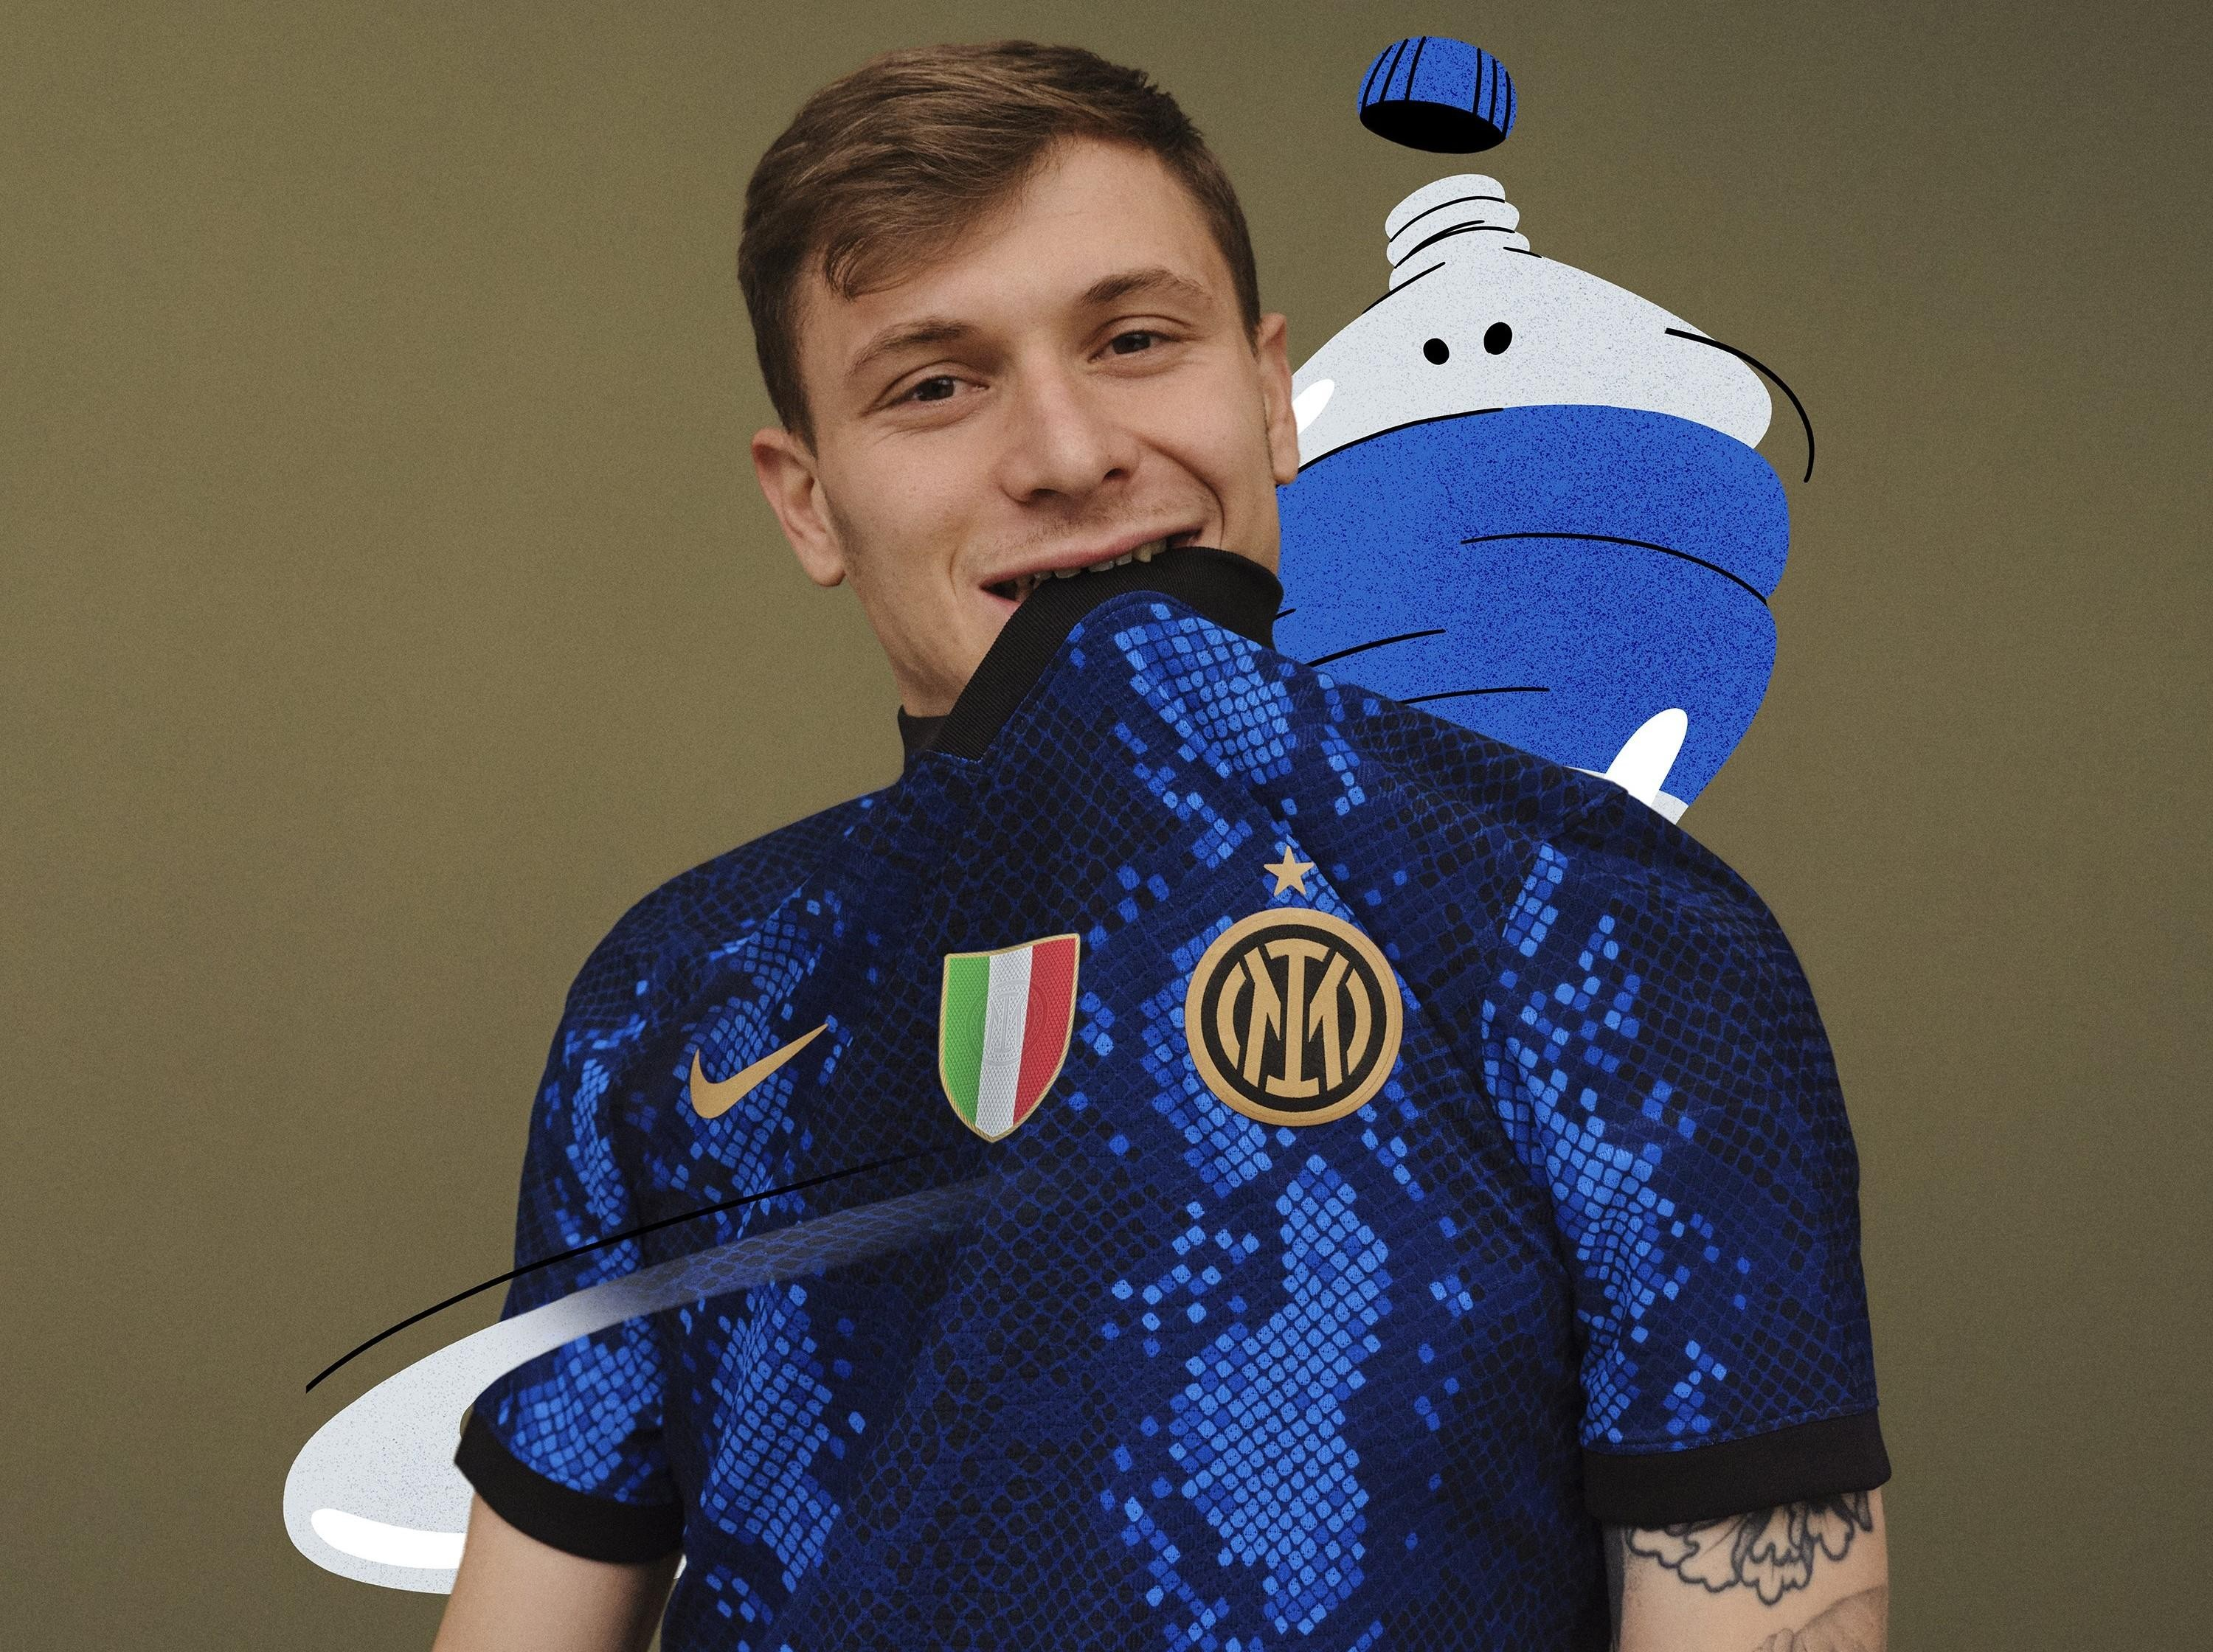 THE NEW SKIN OF MILANO: INTER UNVEIL 2021/22 HOME JERSEY